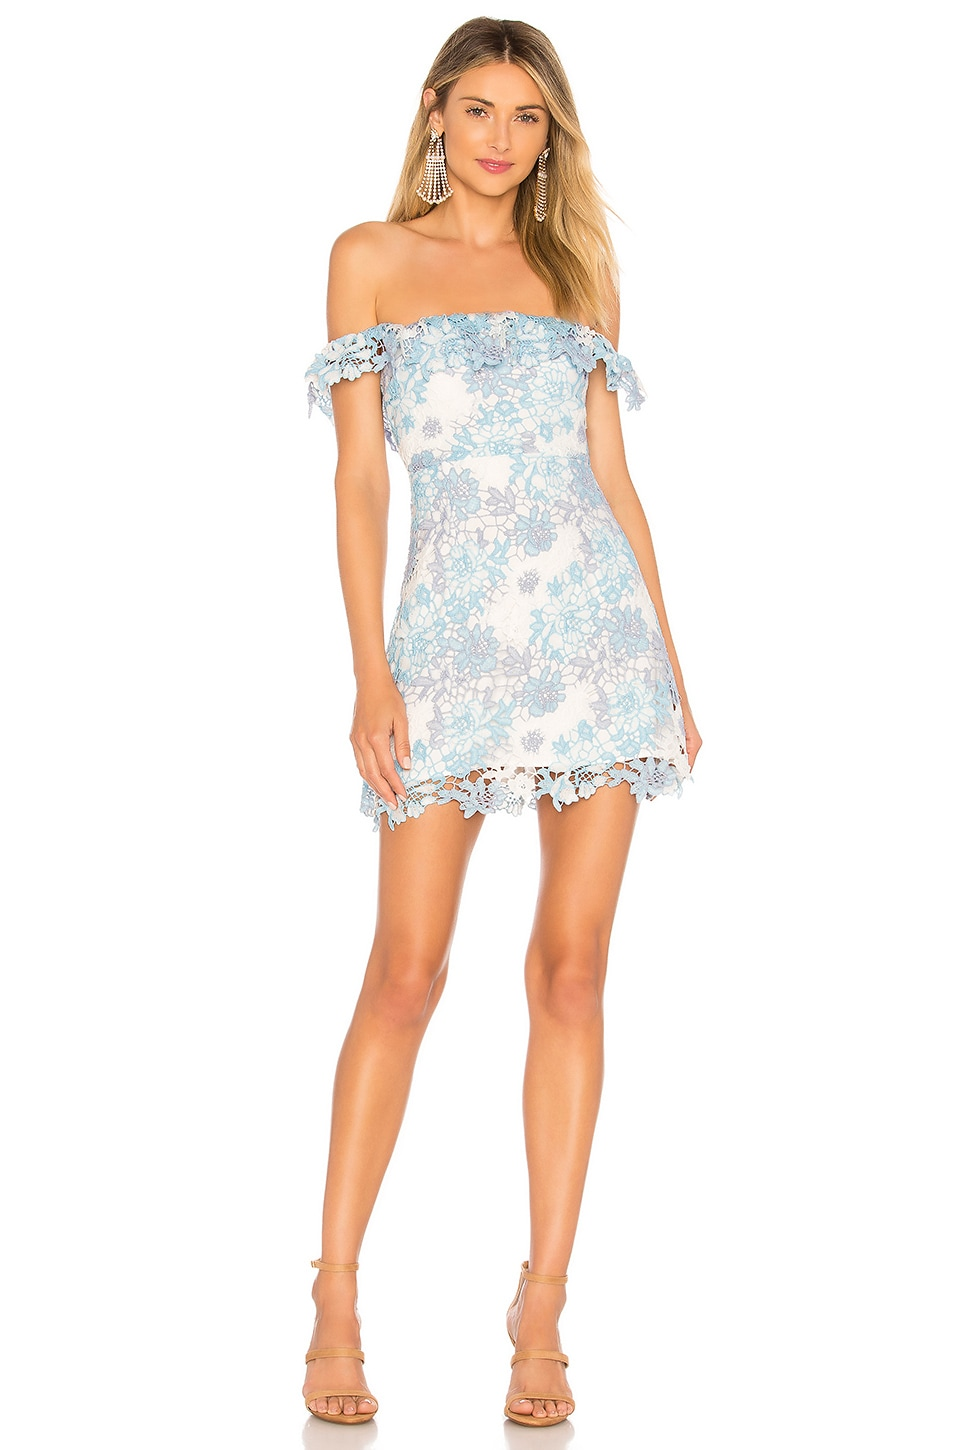 Lovers + Friends Lilo Mini Dress in Blue Multi